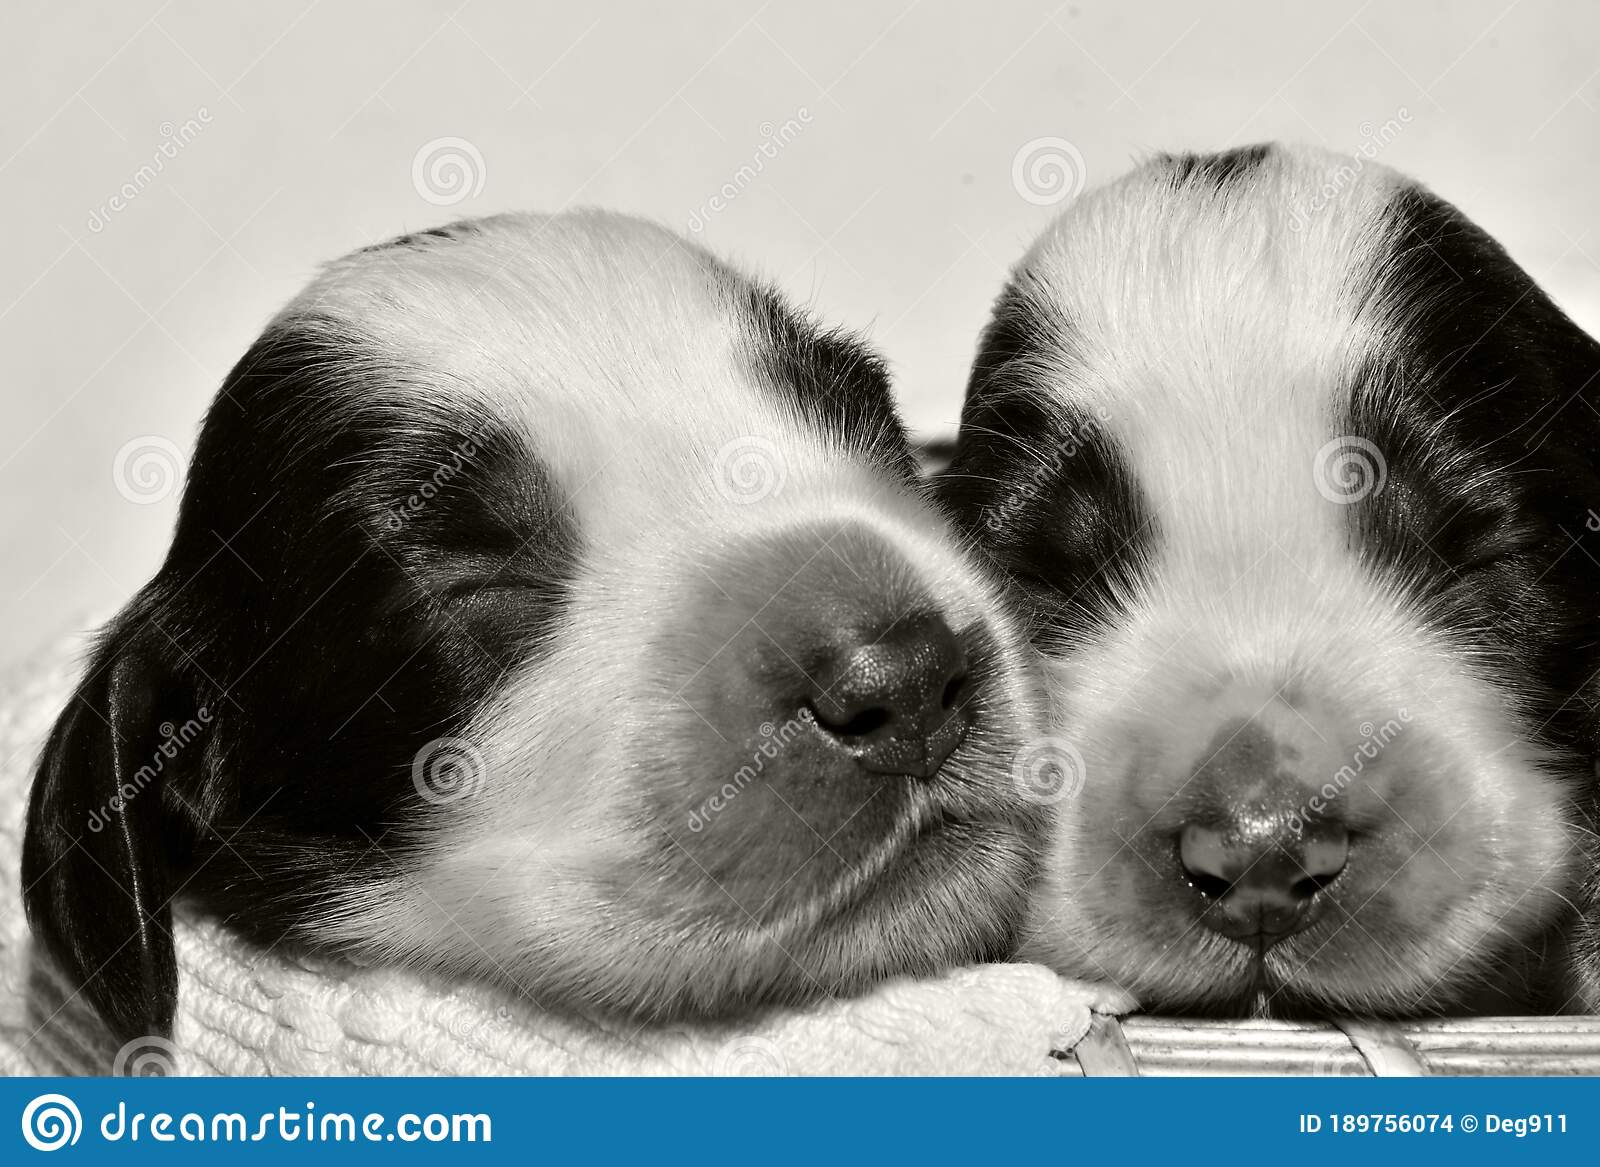 Two Babies Cocker Spaniel Black And White Stock Photo Image Of Natural Babies 189756074